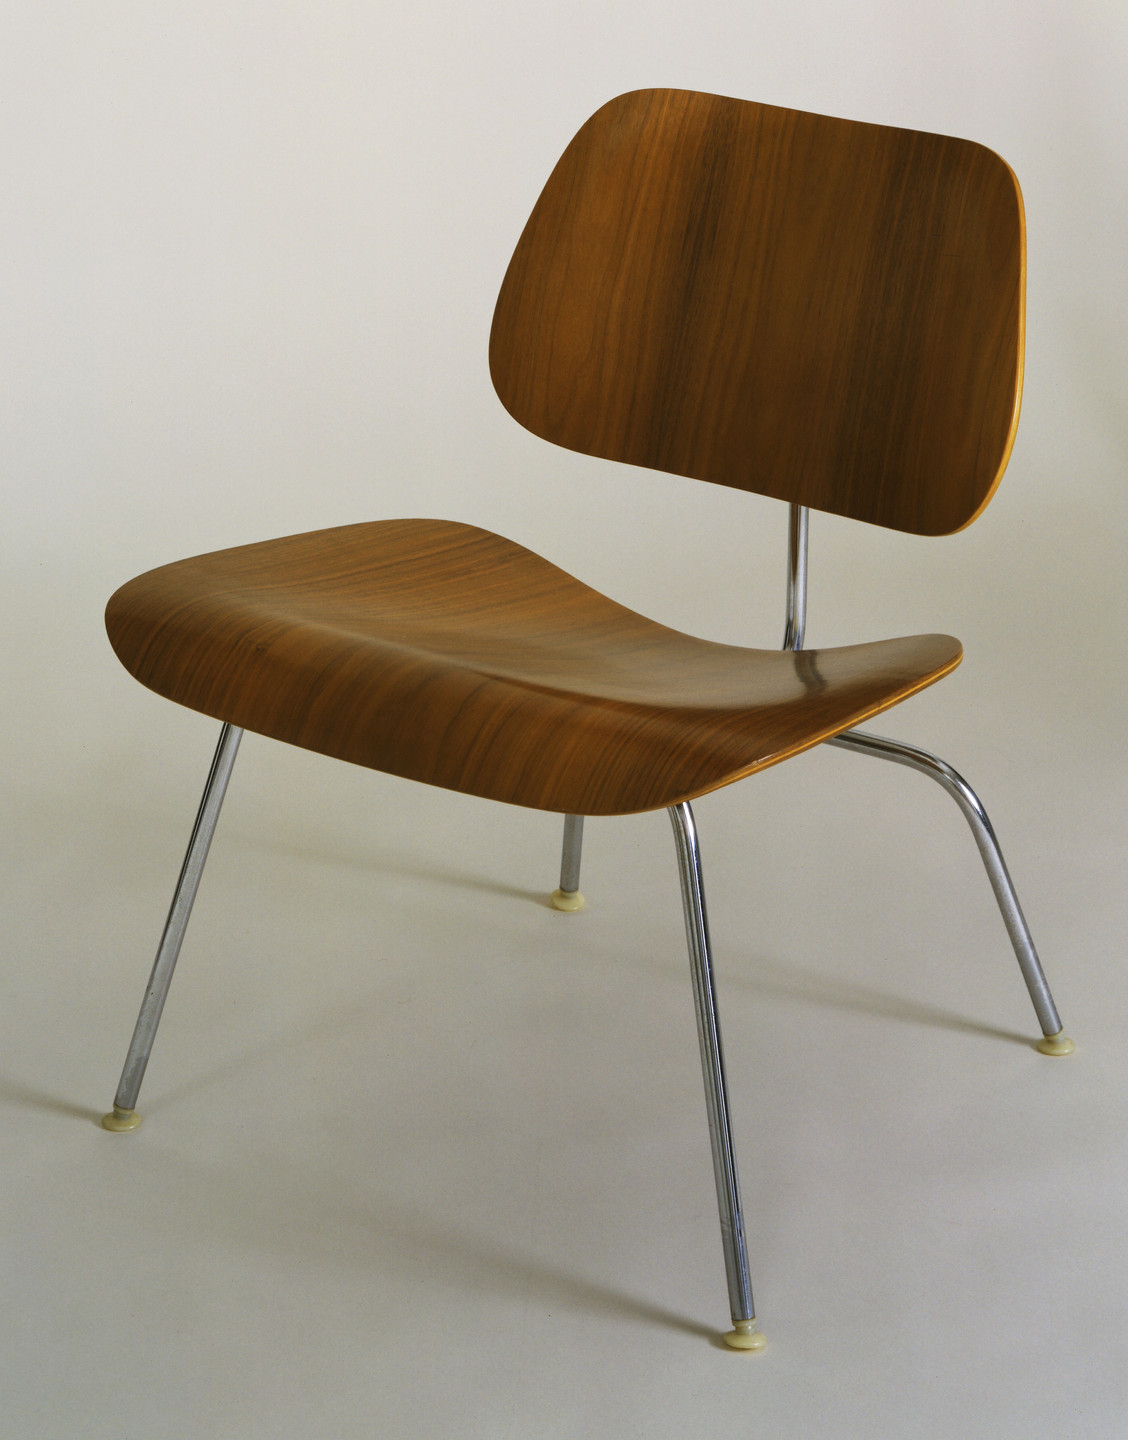 Charles Eames, Ray Eames. Low Side Chair (model LCM). 1946